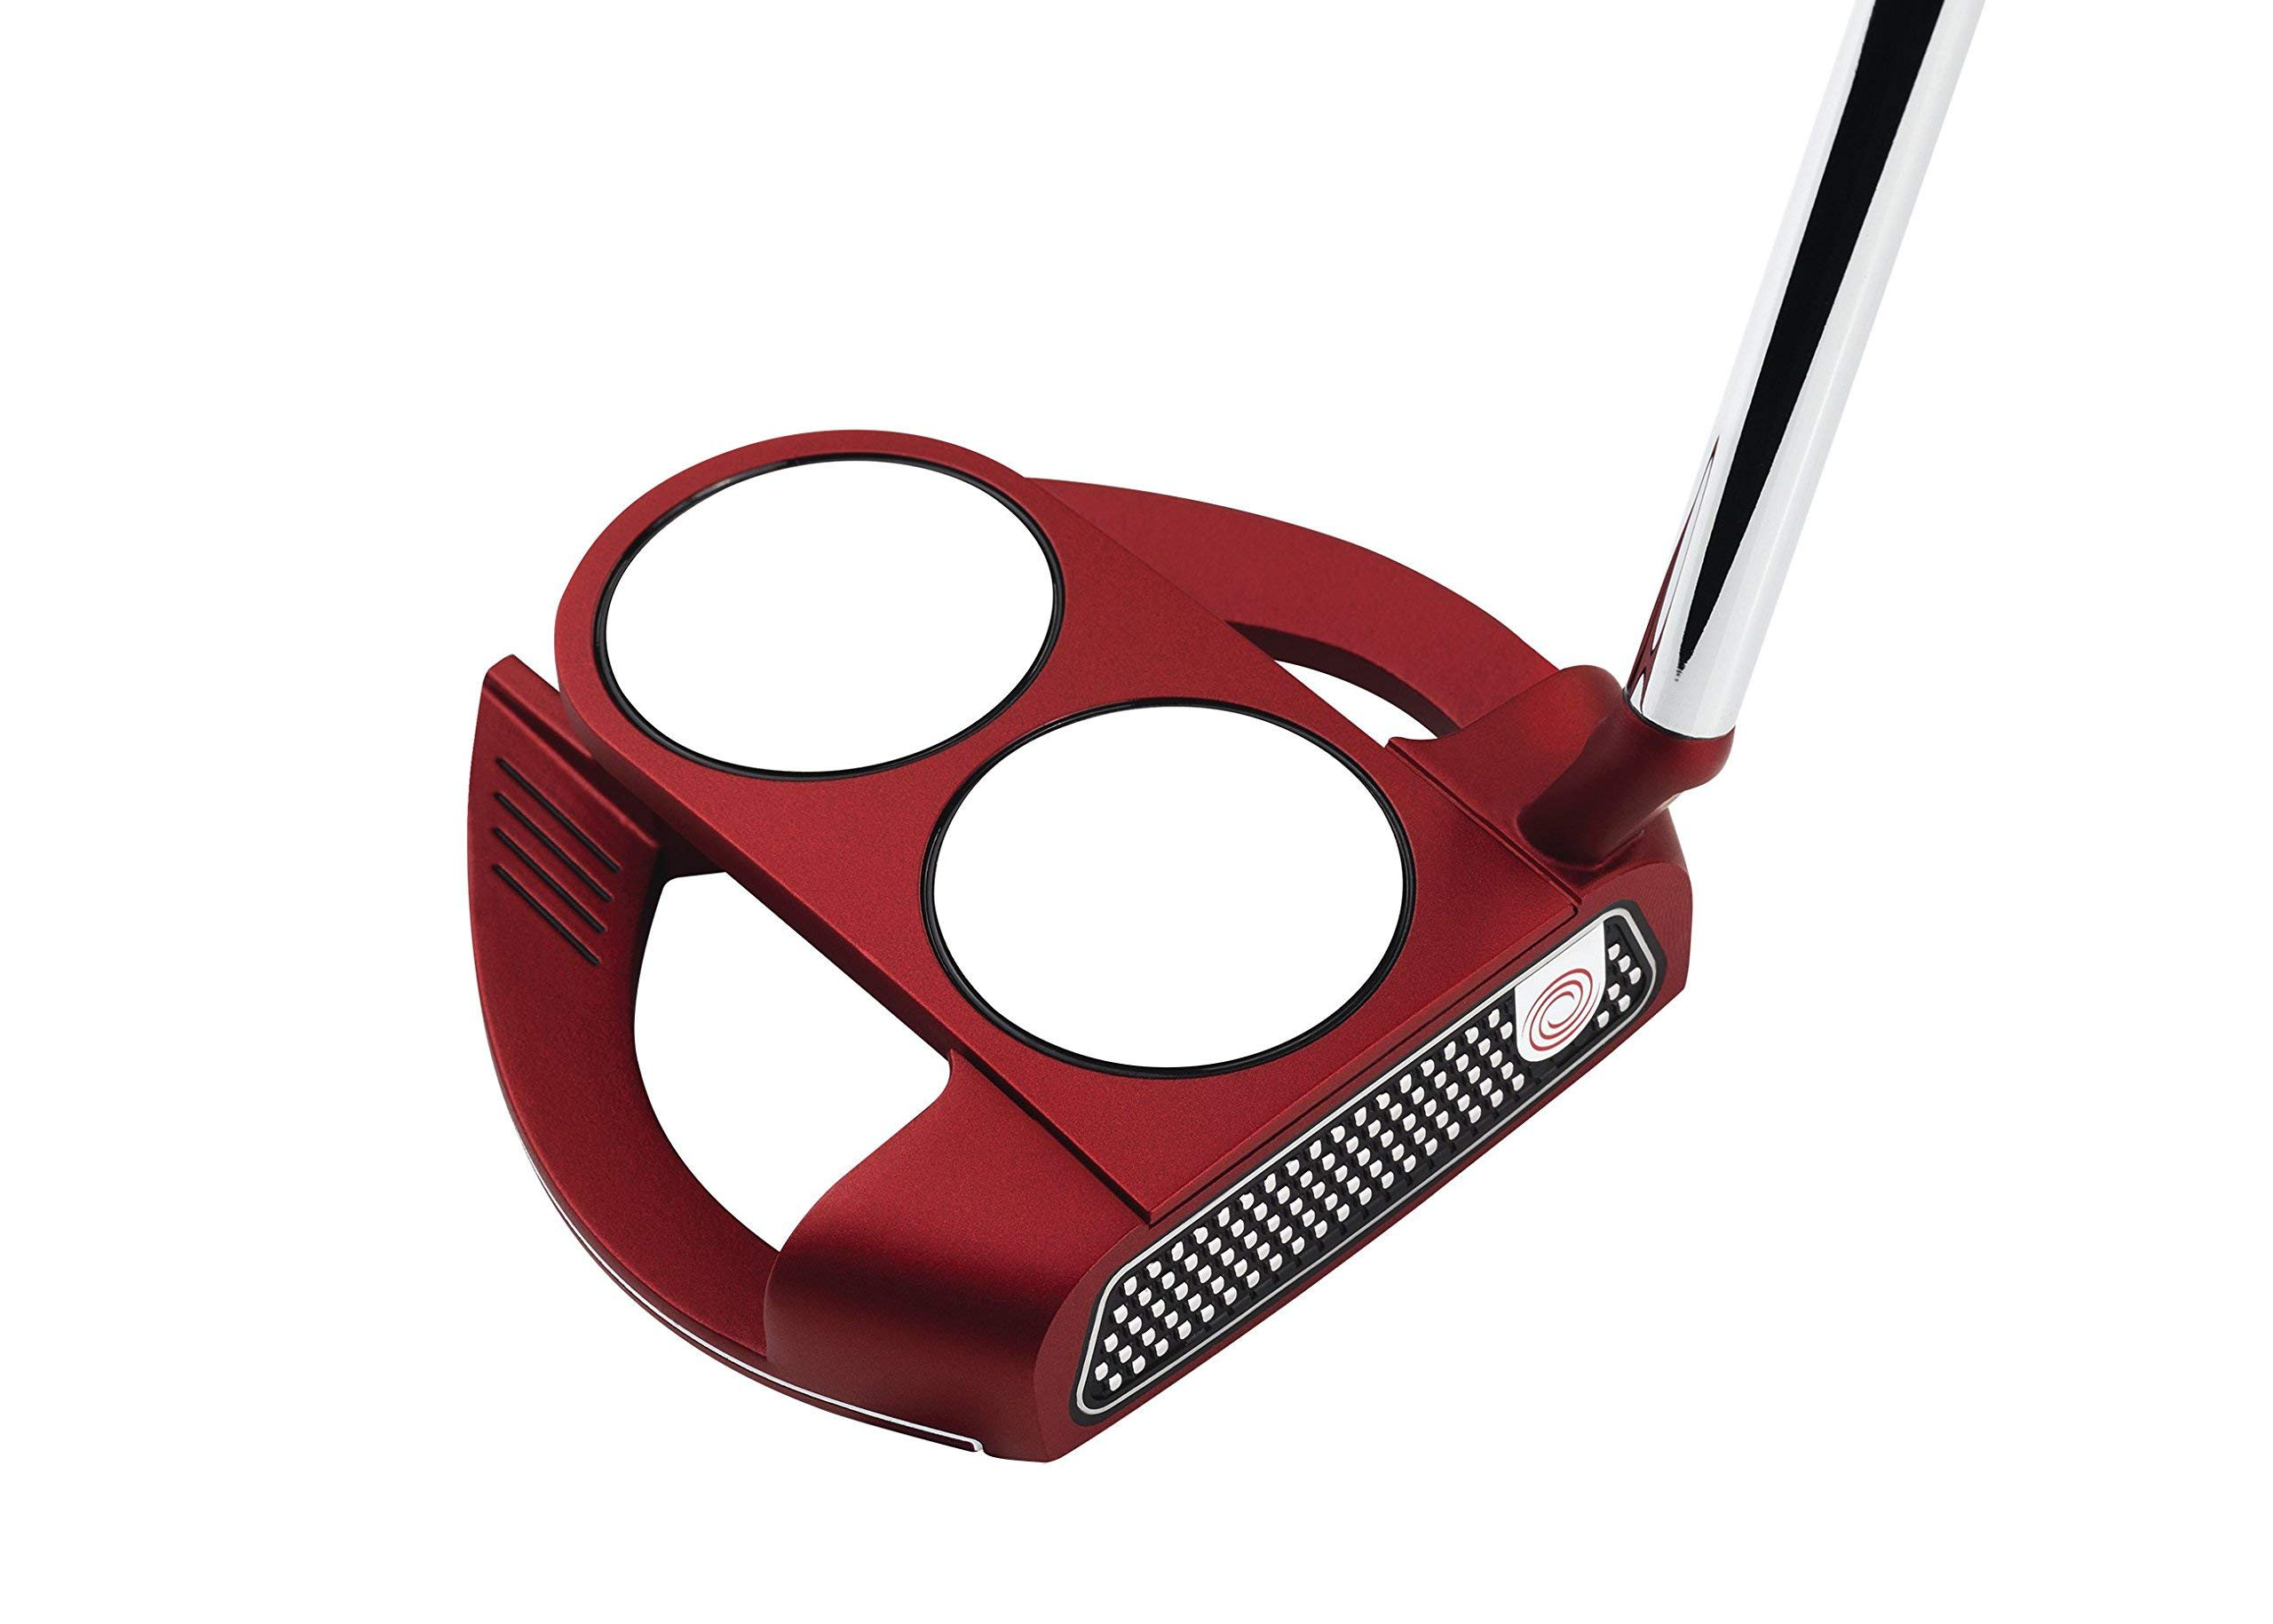 Odyssey O-Works Red 2-Ball Fang Slant Putter, 35 in (Renewed) by Callaway Golf